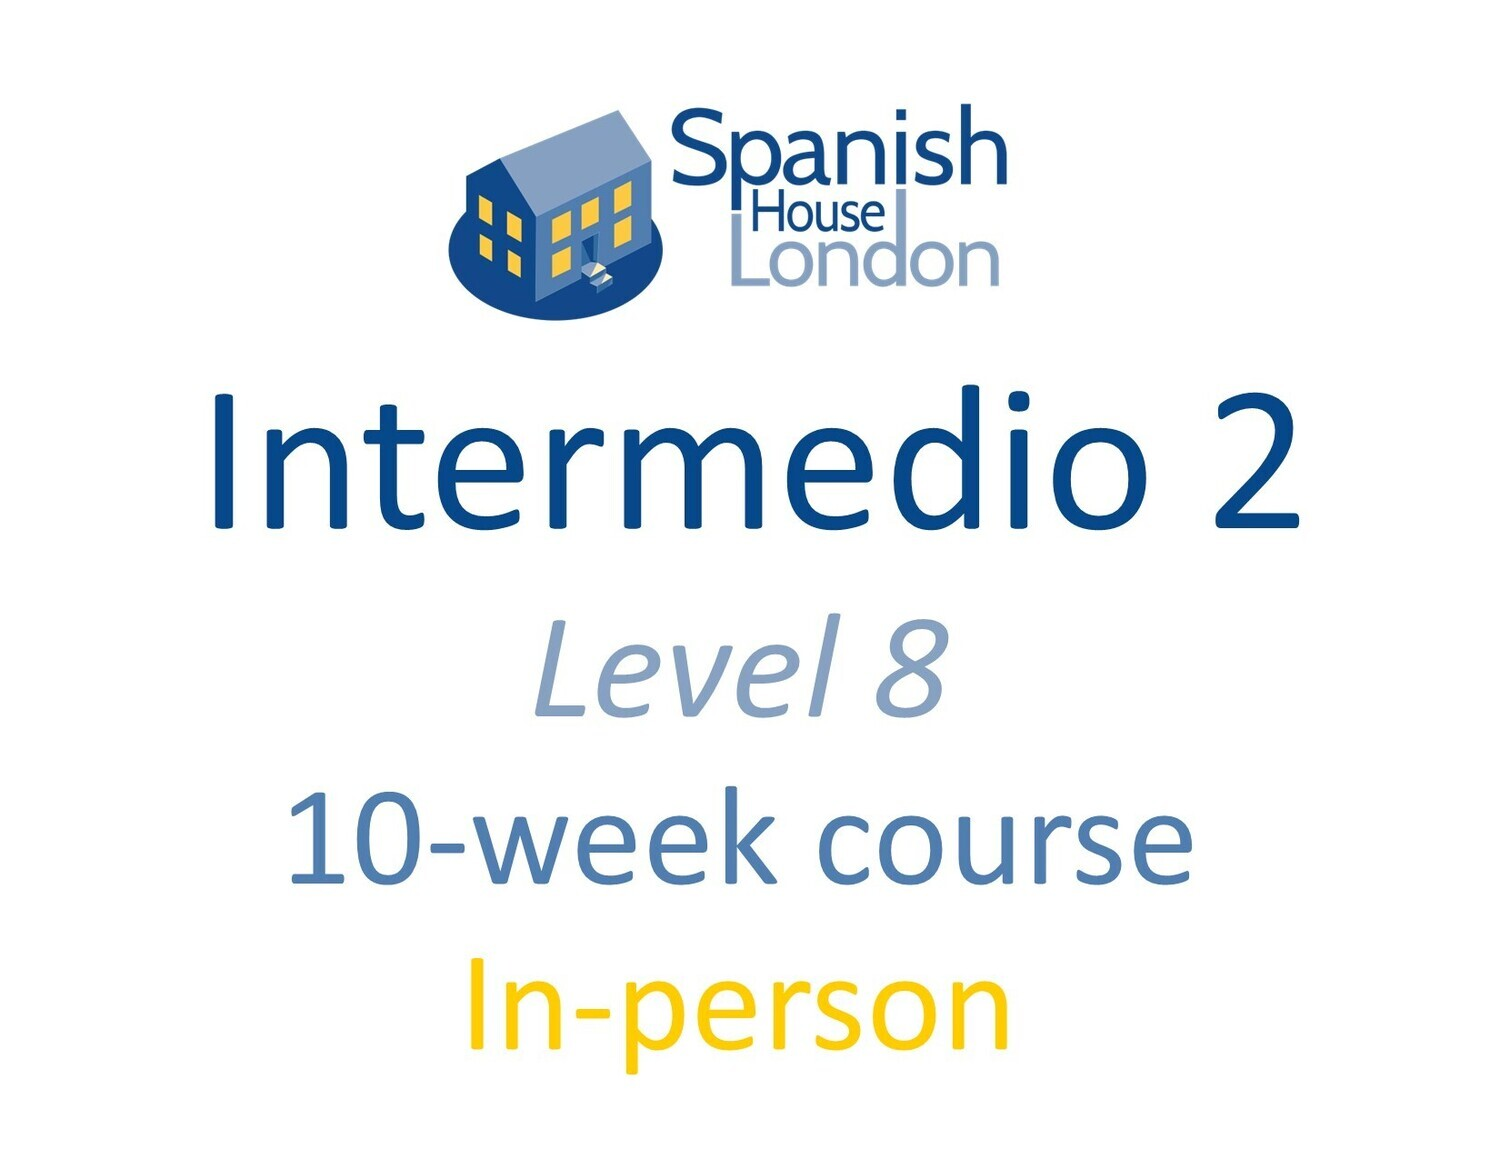 Intermedio 2 Course starting on 29th November at 6pm in Euston / King's Cross